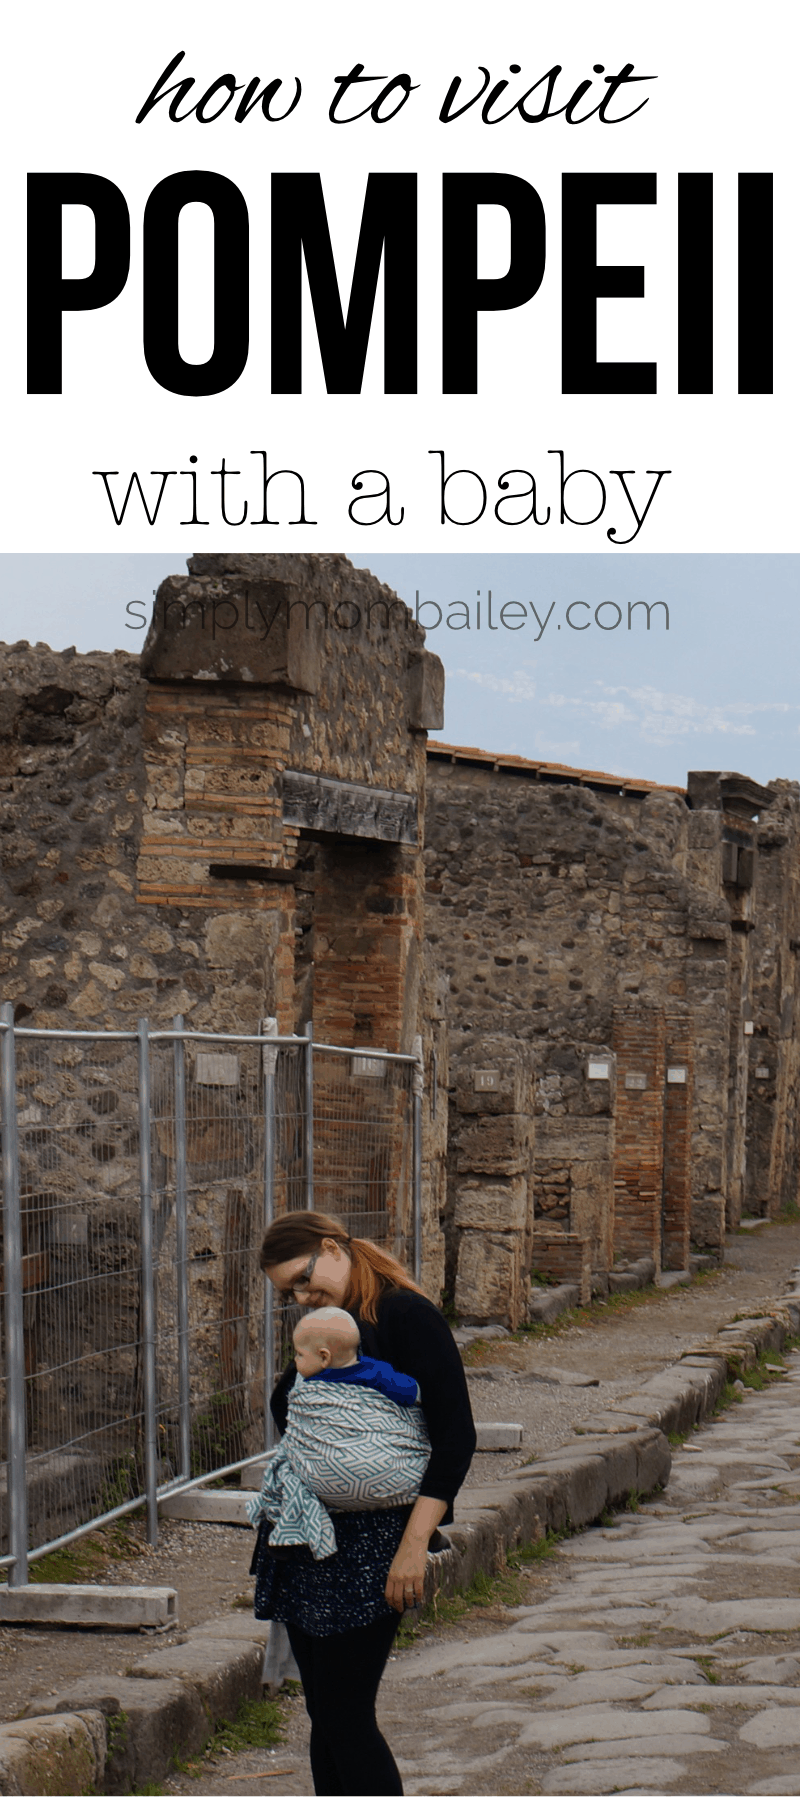 How to visit Pompeii with Baby #pompeii #traveleurope #familytravel